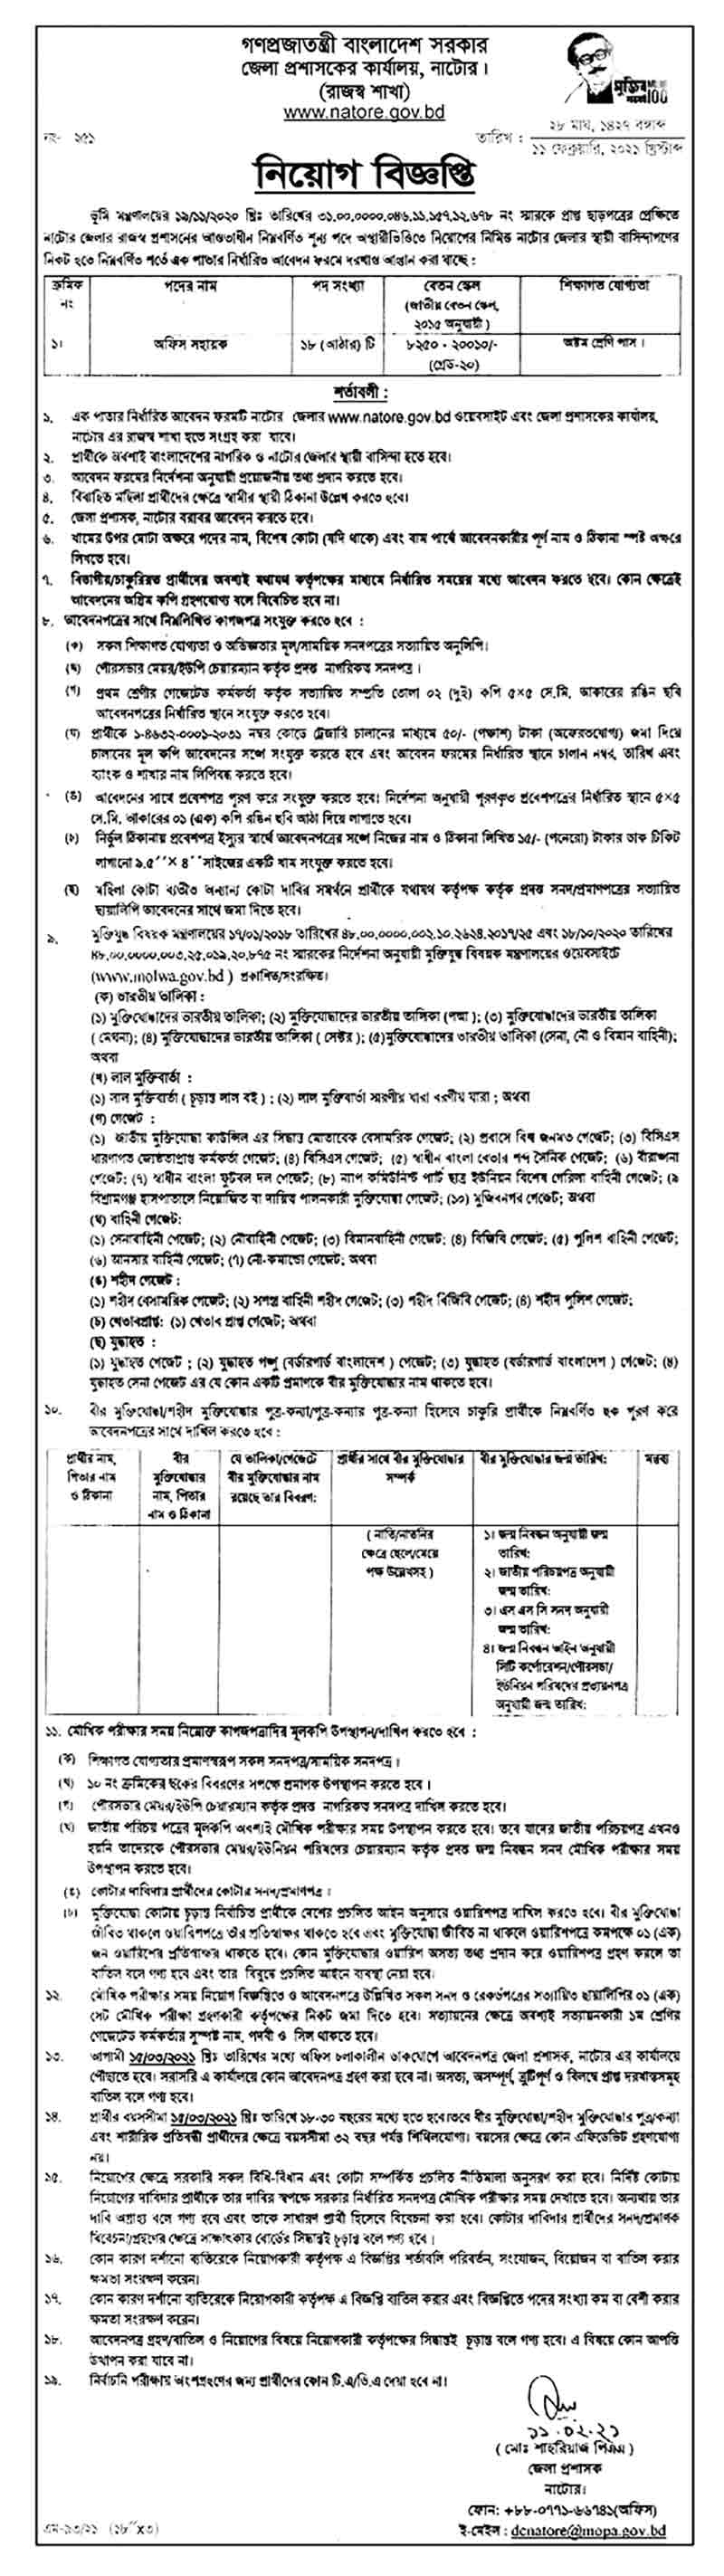 Office of District Commissioner, Natore Job Circular 2021 (Image)